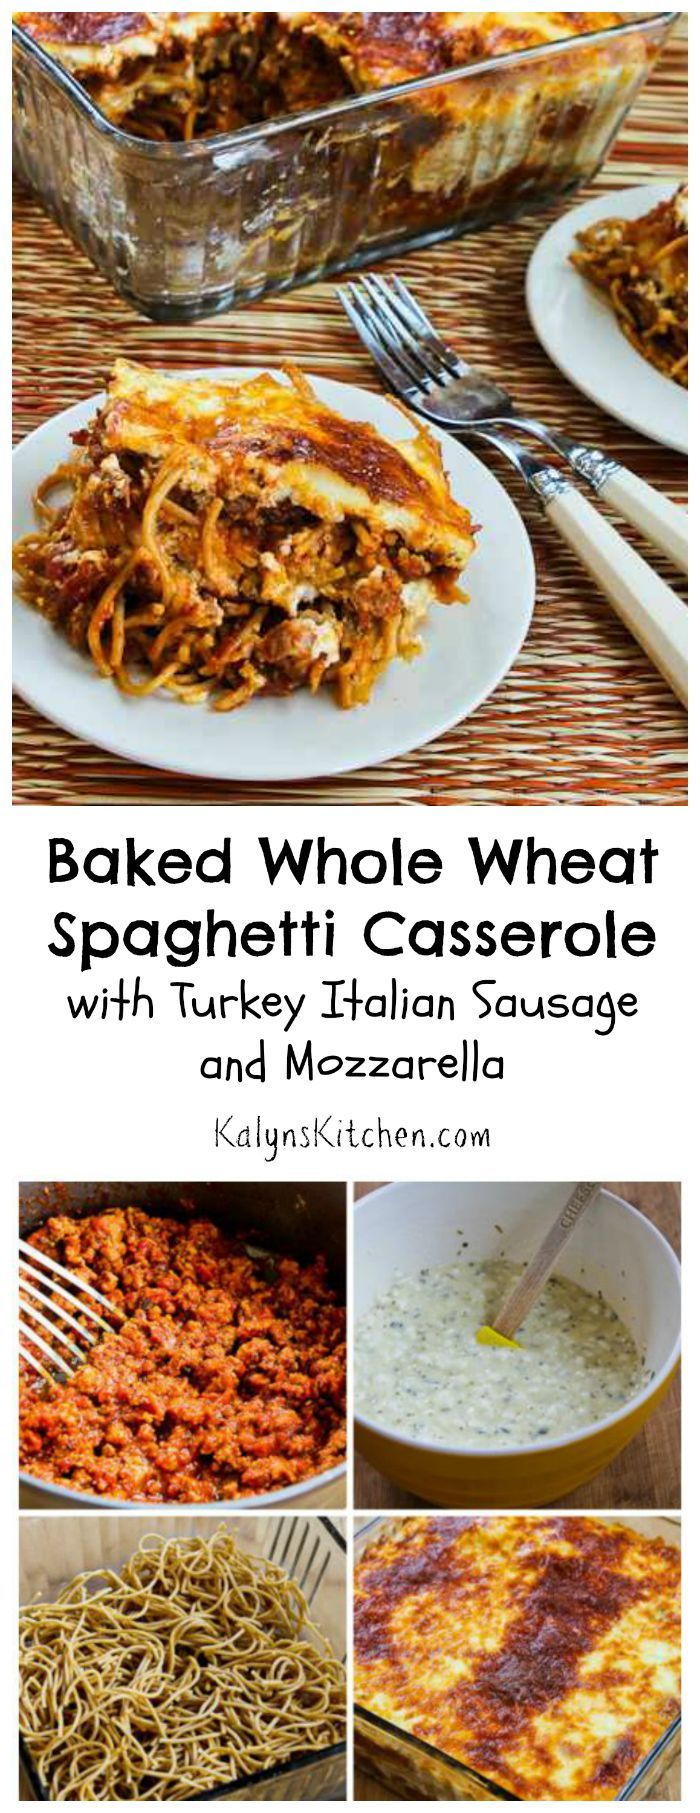 ... Casserole Recipes] on Pinterest | Mexican Casserole, Casseroles and